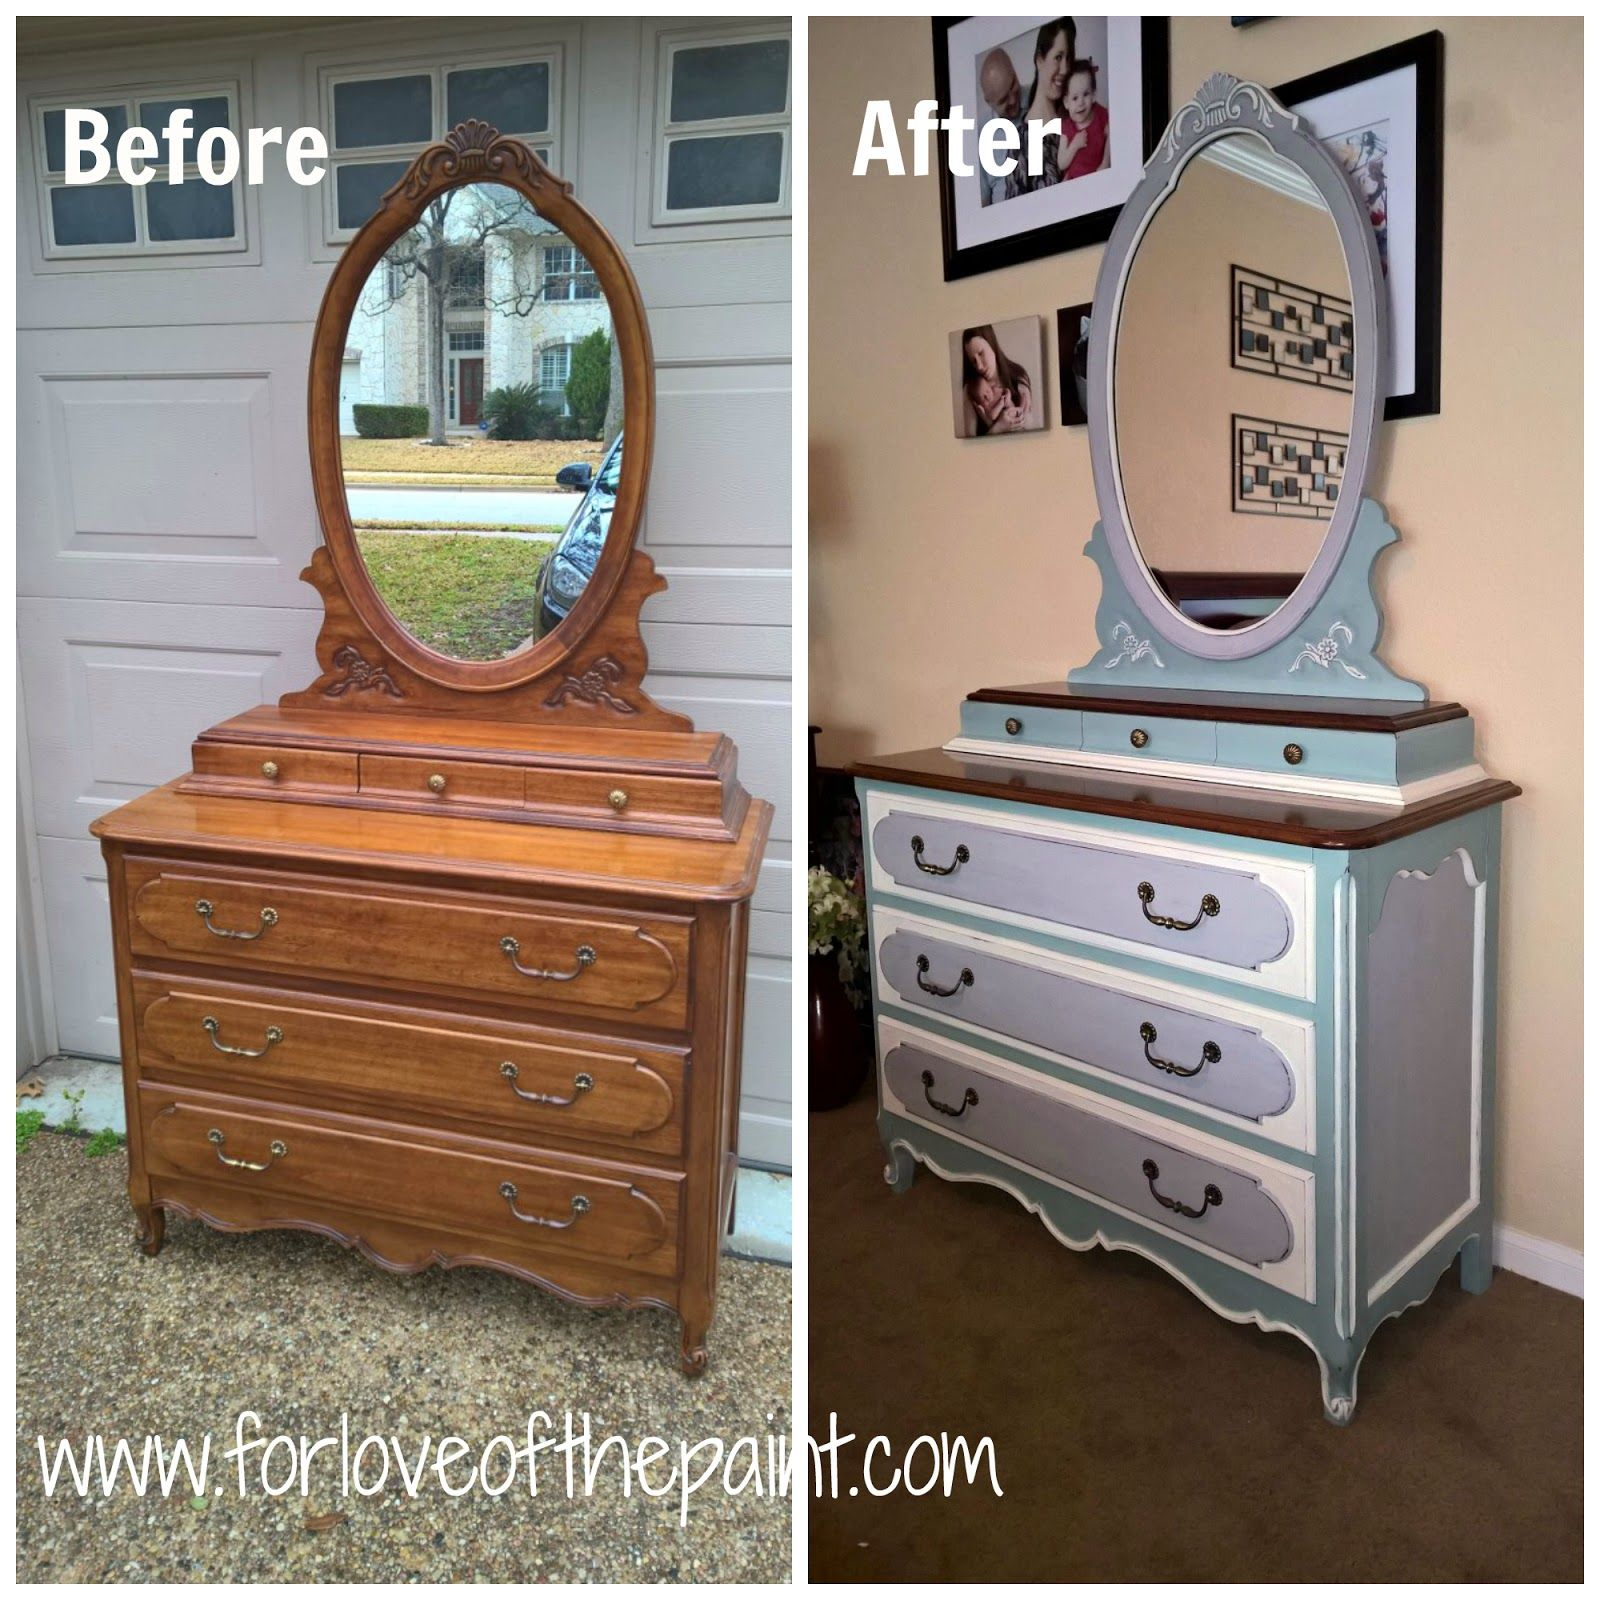 Before And After Vintage Henry Link Dresser And Mirror In Paris Grey Duck Egg Blue And Old White Painted Furniture Colors Colorful Furniture Furniture